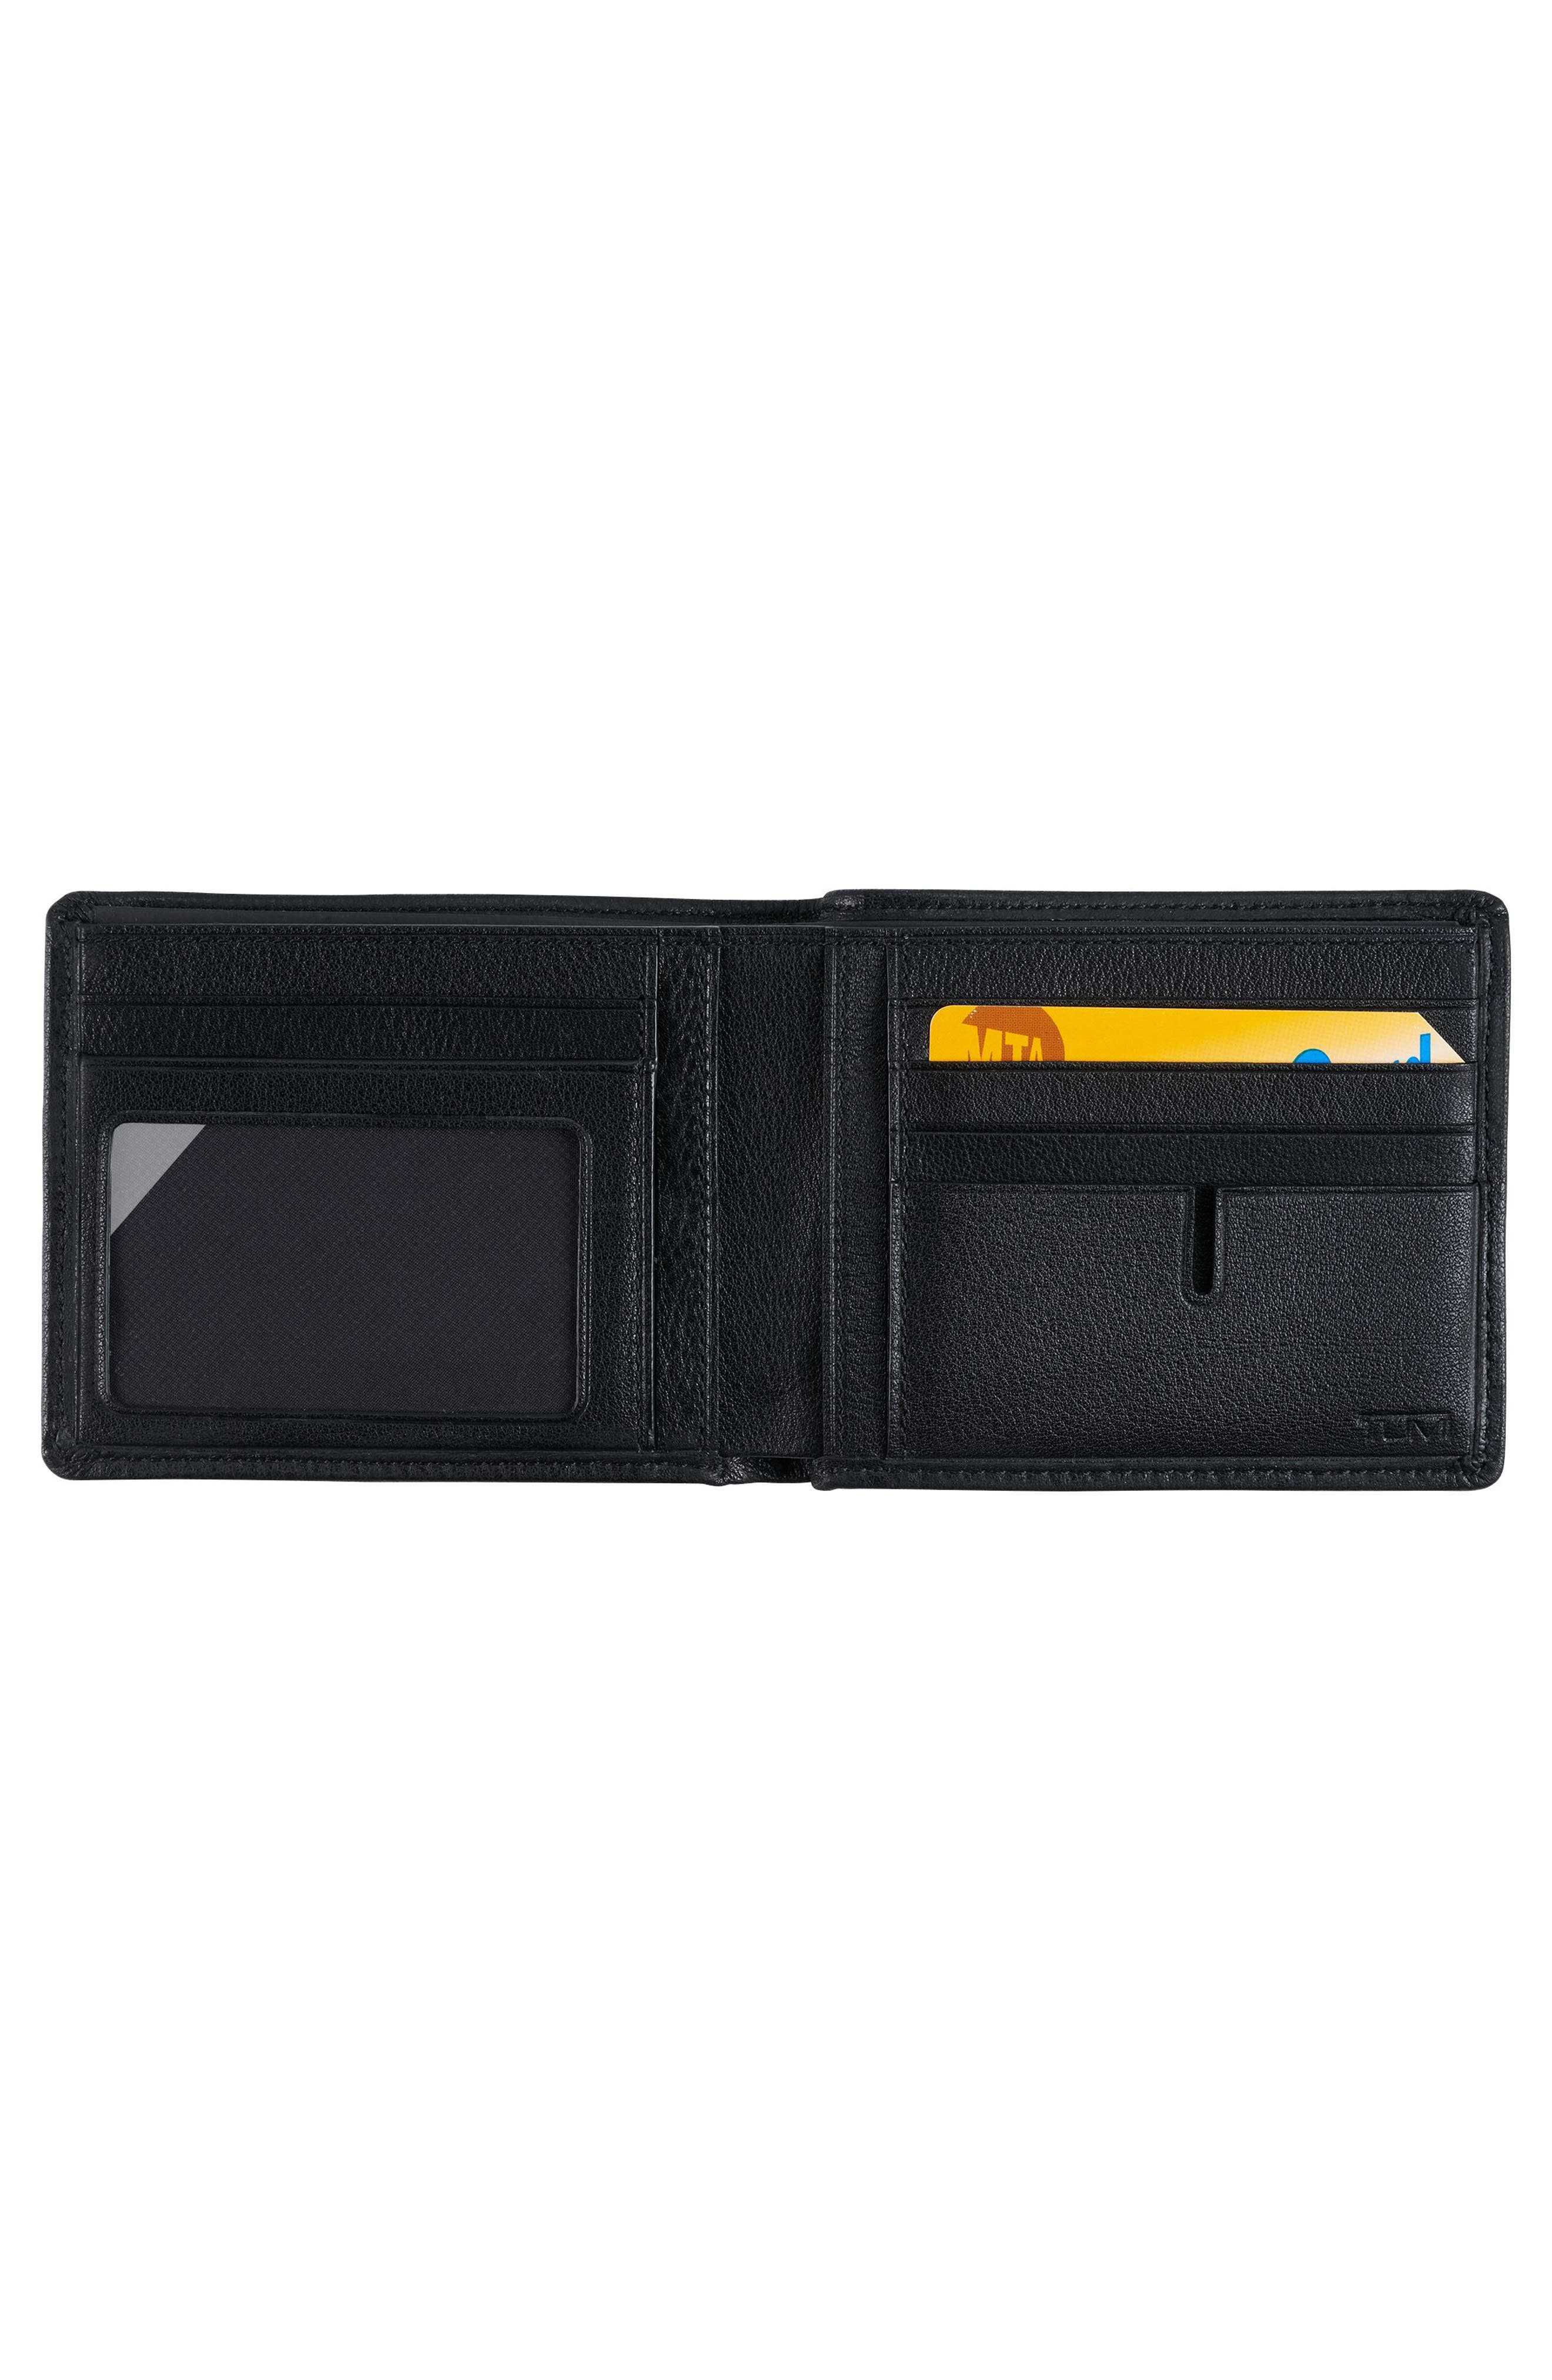 Global Leather RFID Wallet,                             Alternate thumbnail 2, color,                             Black Textured